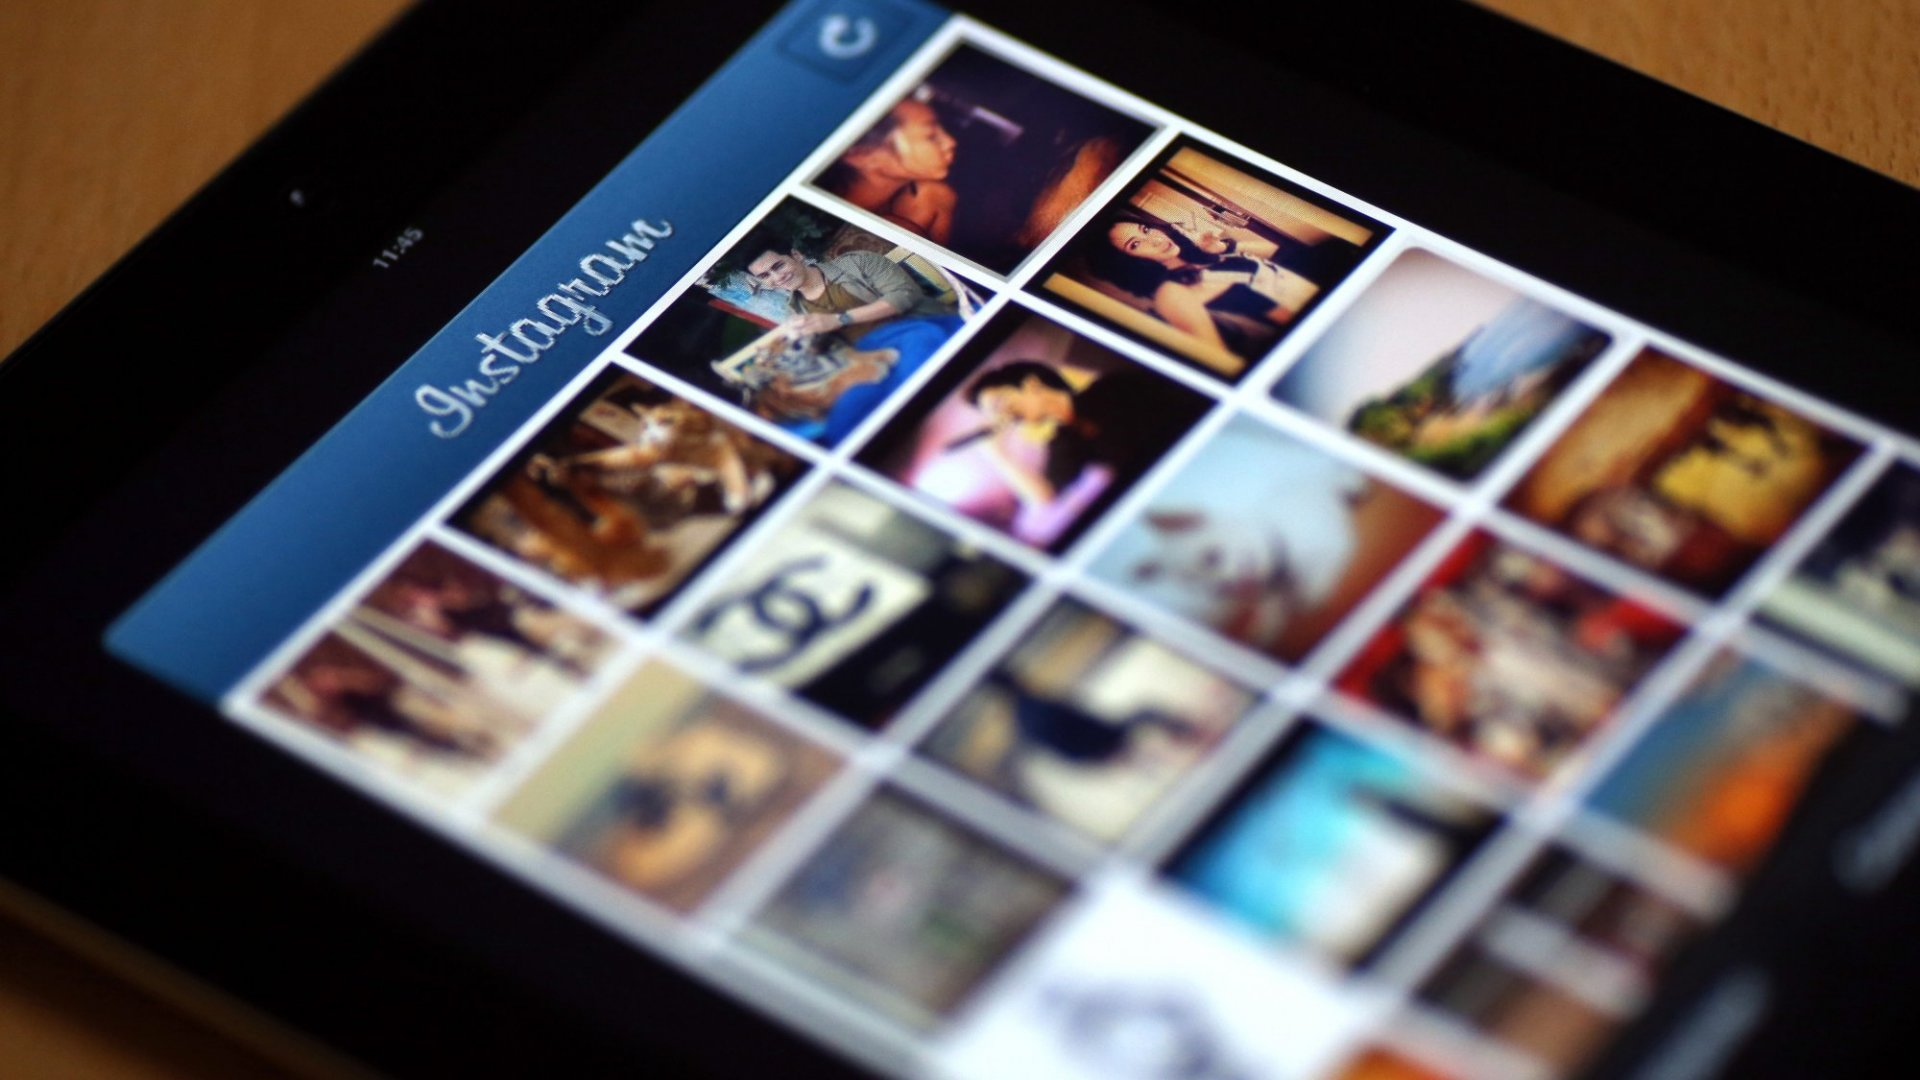 The Ultimate Guide to Creating an Instagram Profile Everyone Will Want to Follow